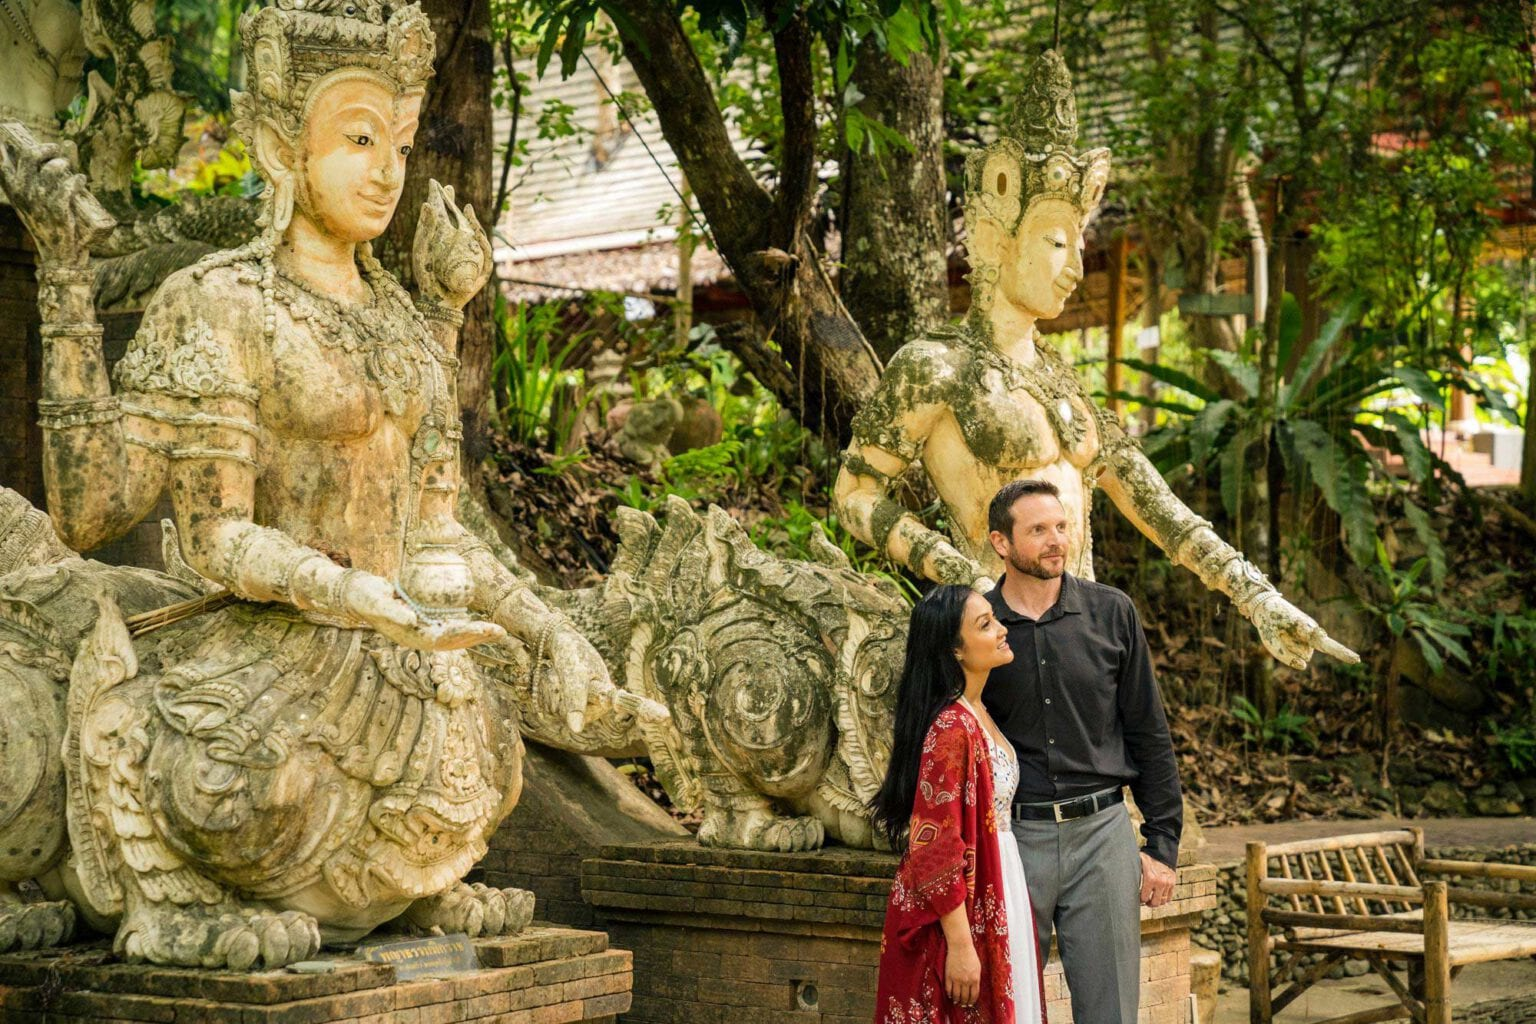 60 Minute Chiang Mai photo sessions